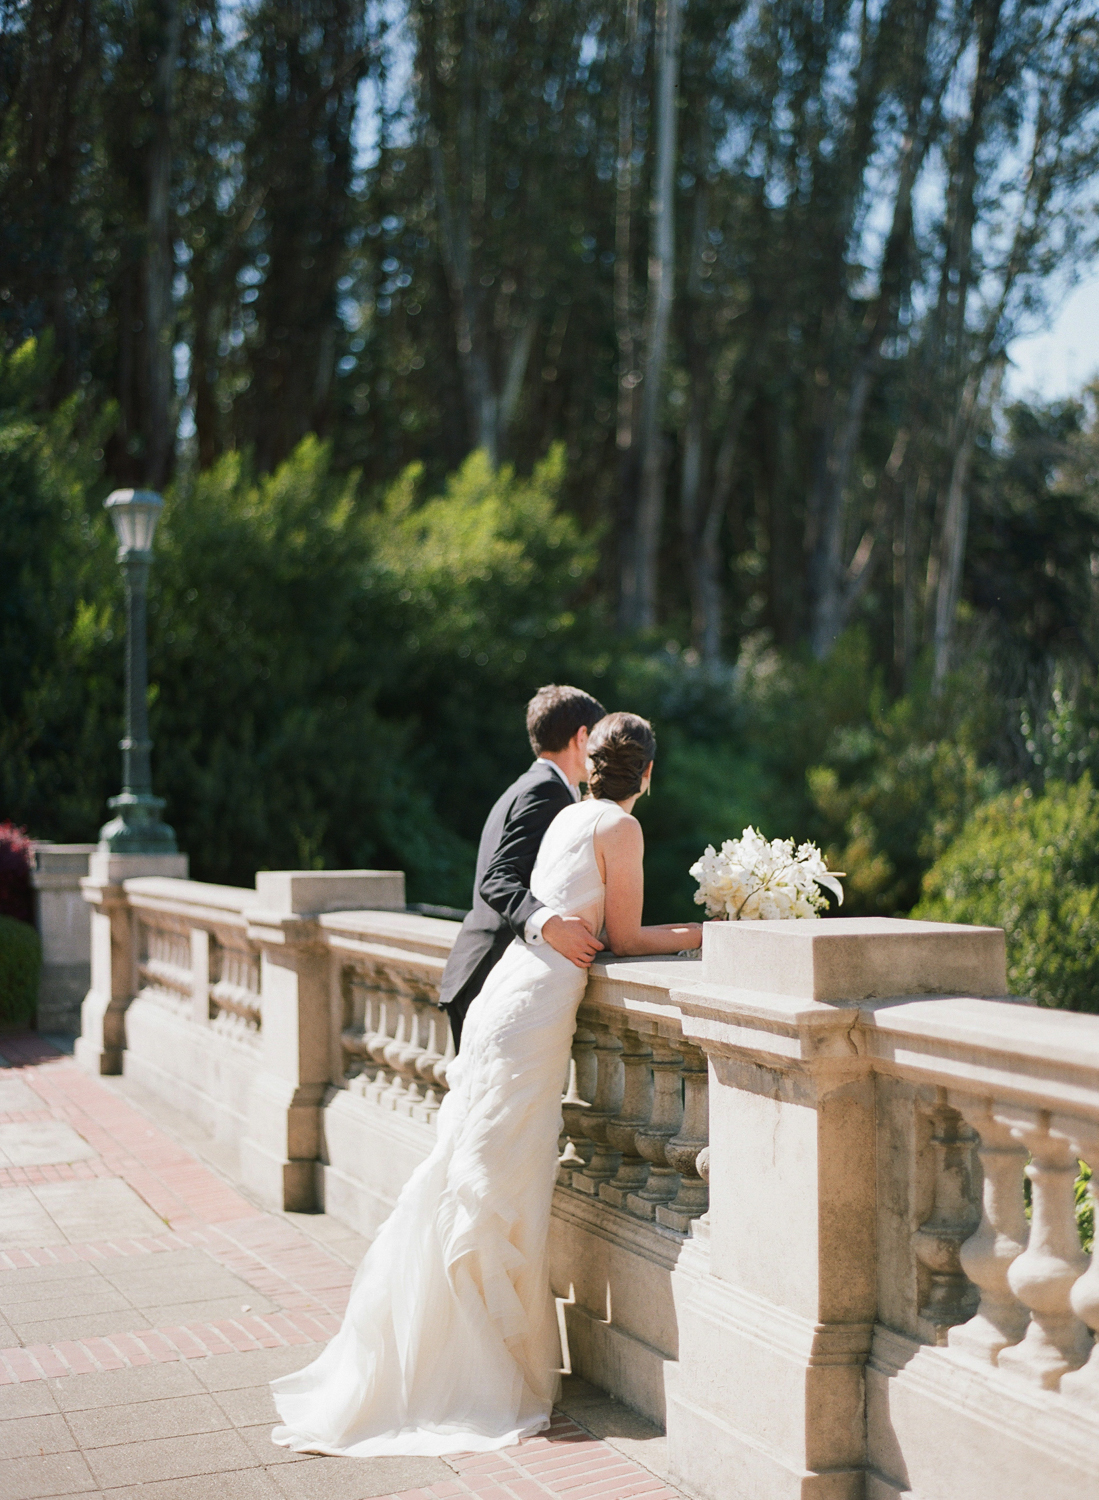 The couple looks out over the Lyon steps together before the wedding; Sylvie Gil Photography